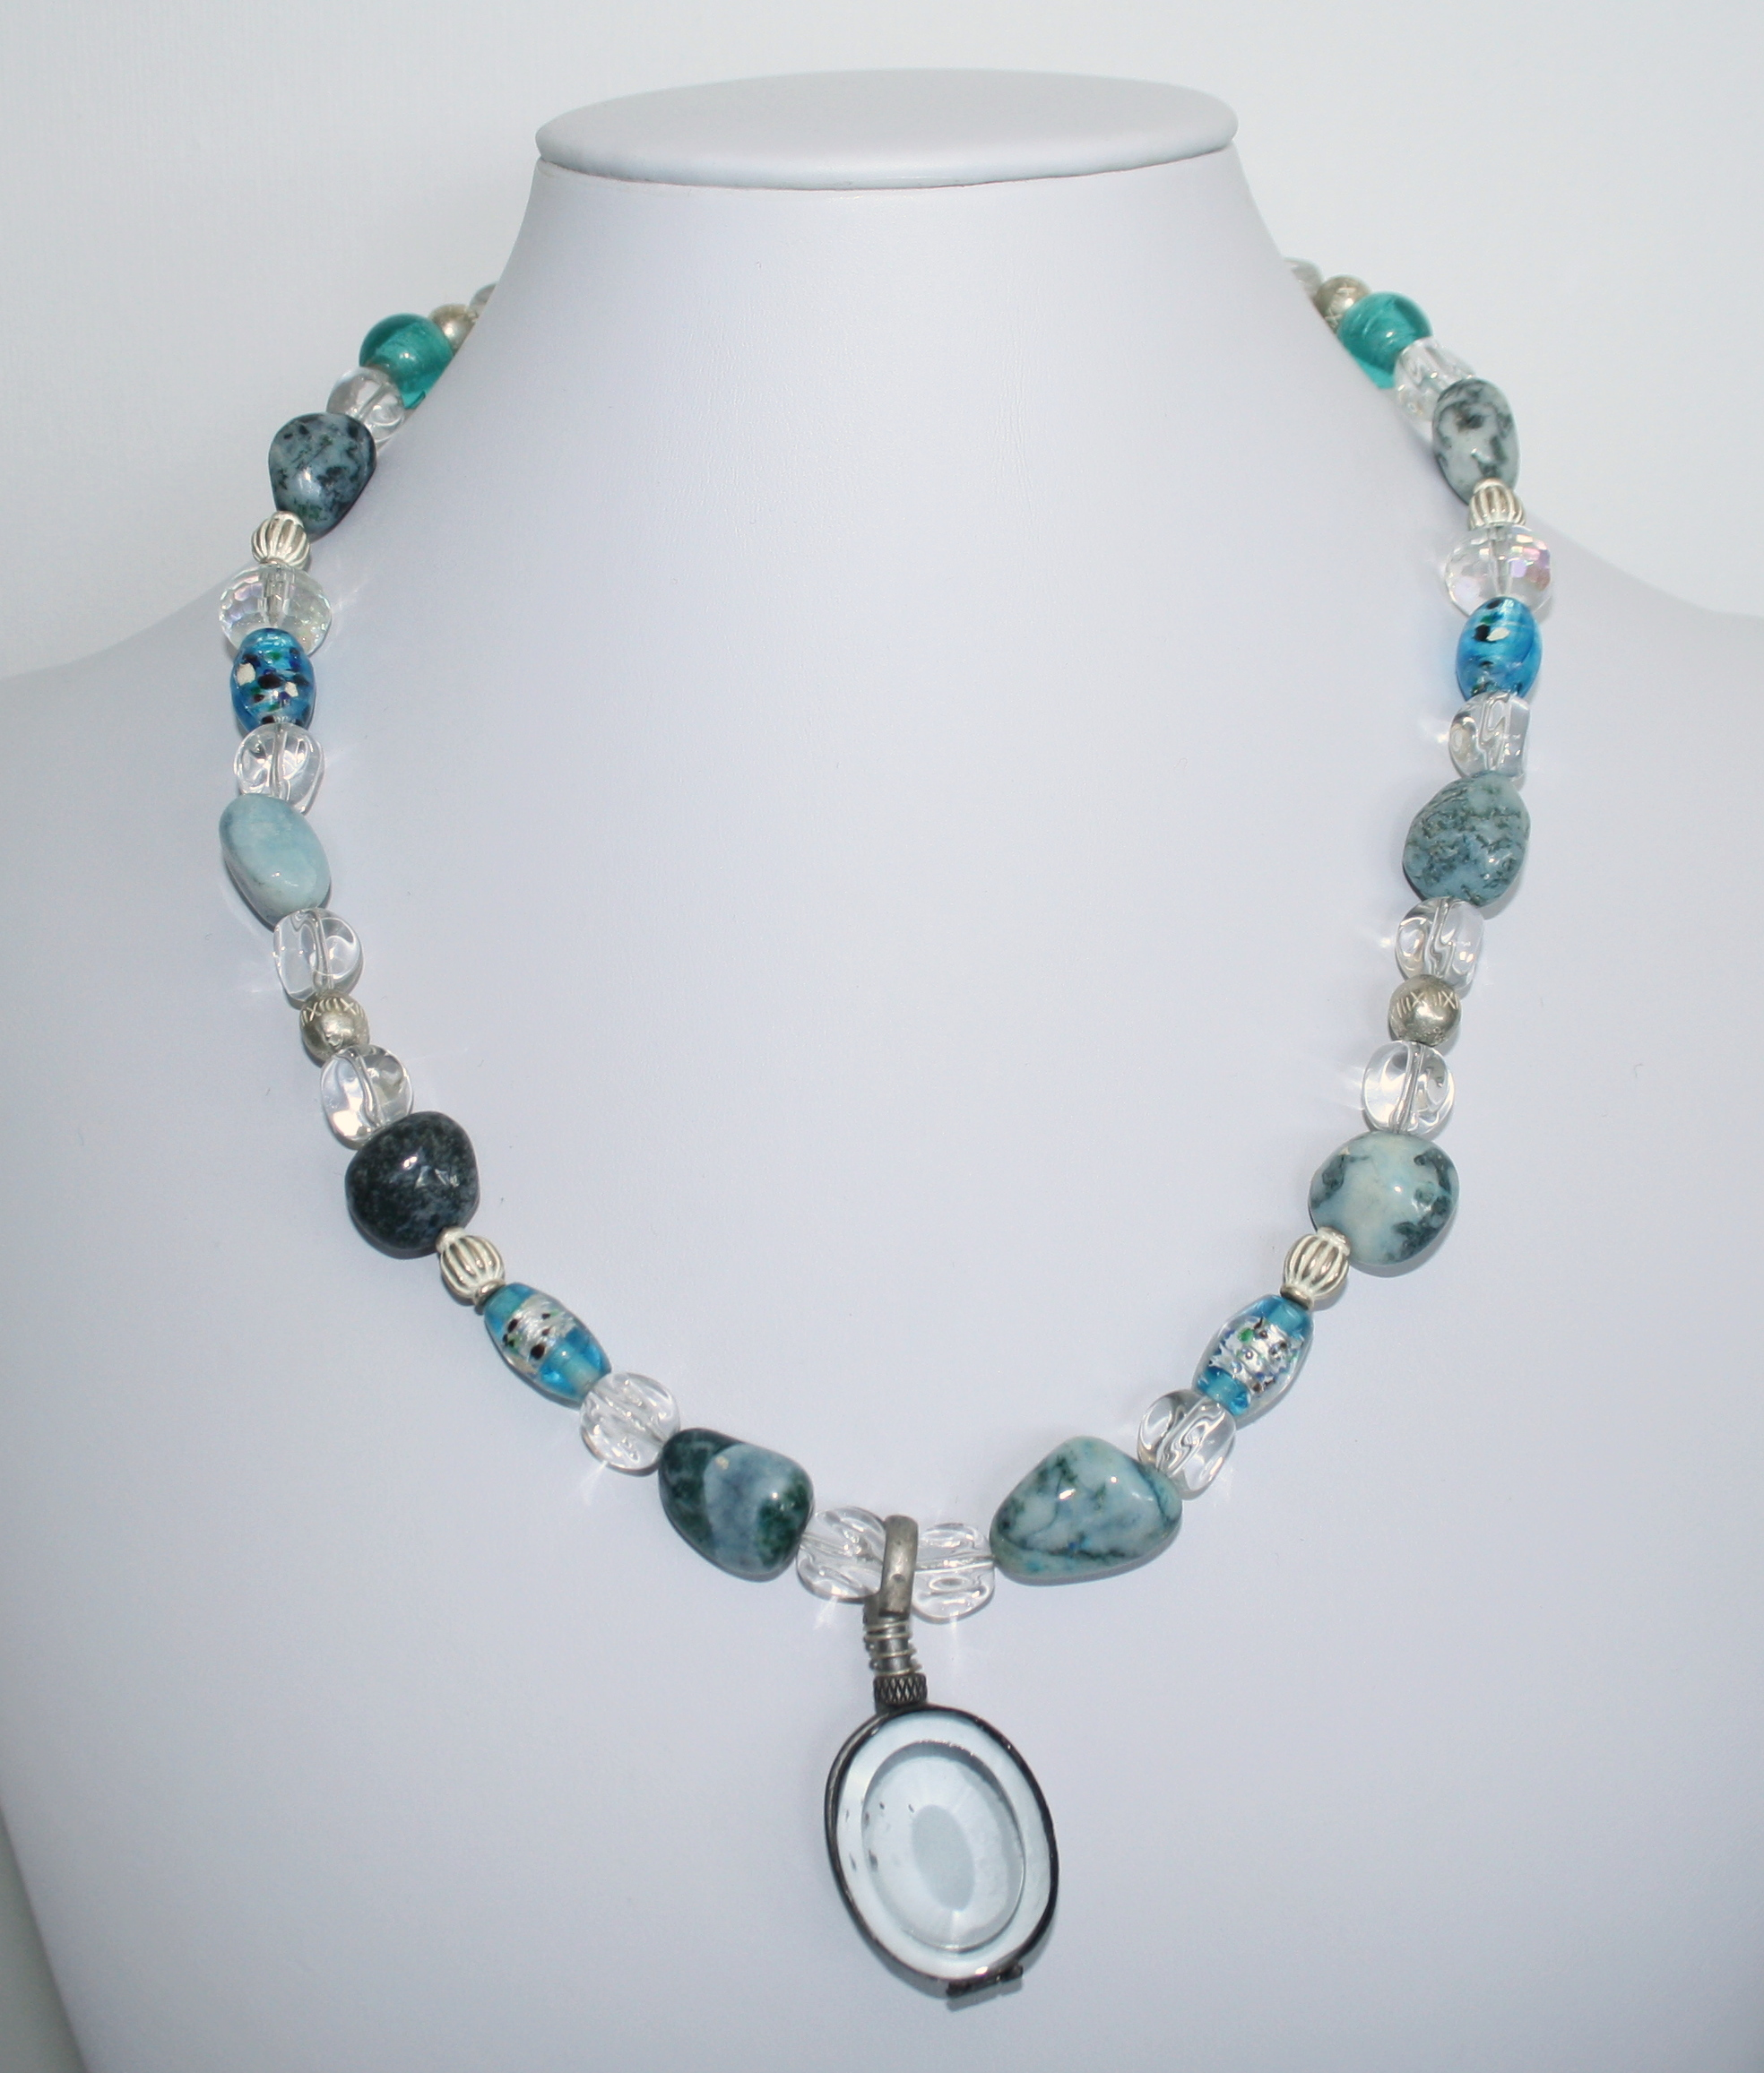 com marble rsp main at long necklace lewis online john johnlewis blue buyjohn bead pdp